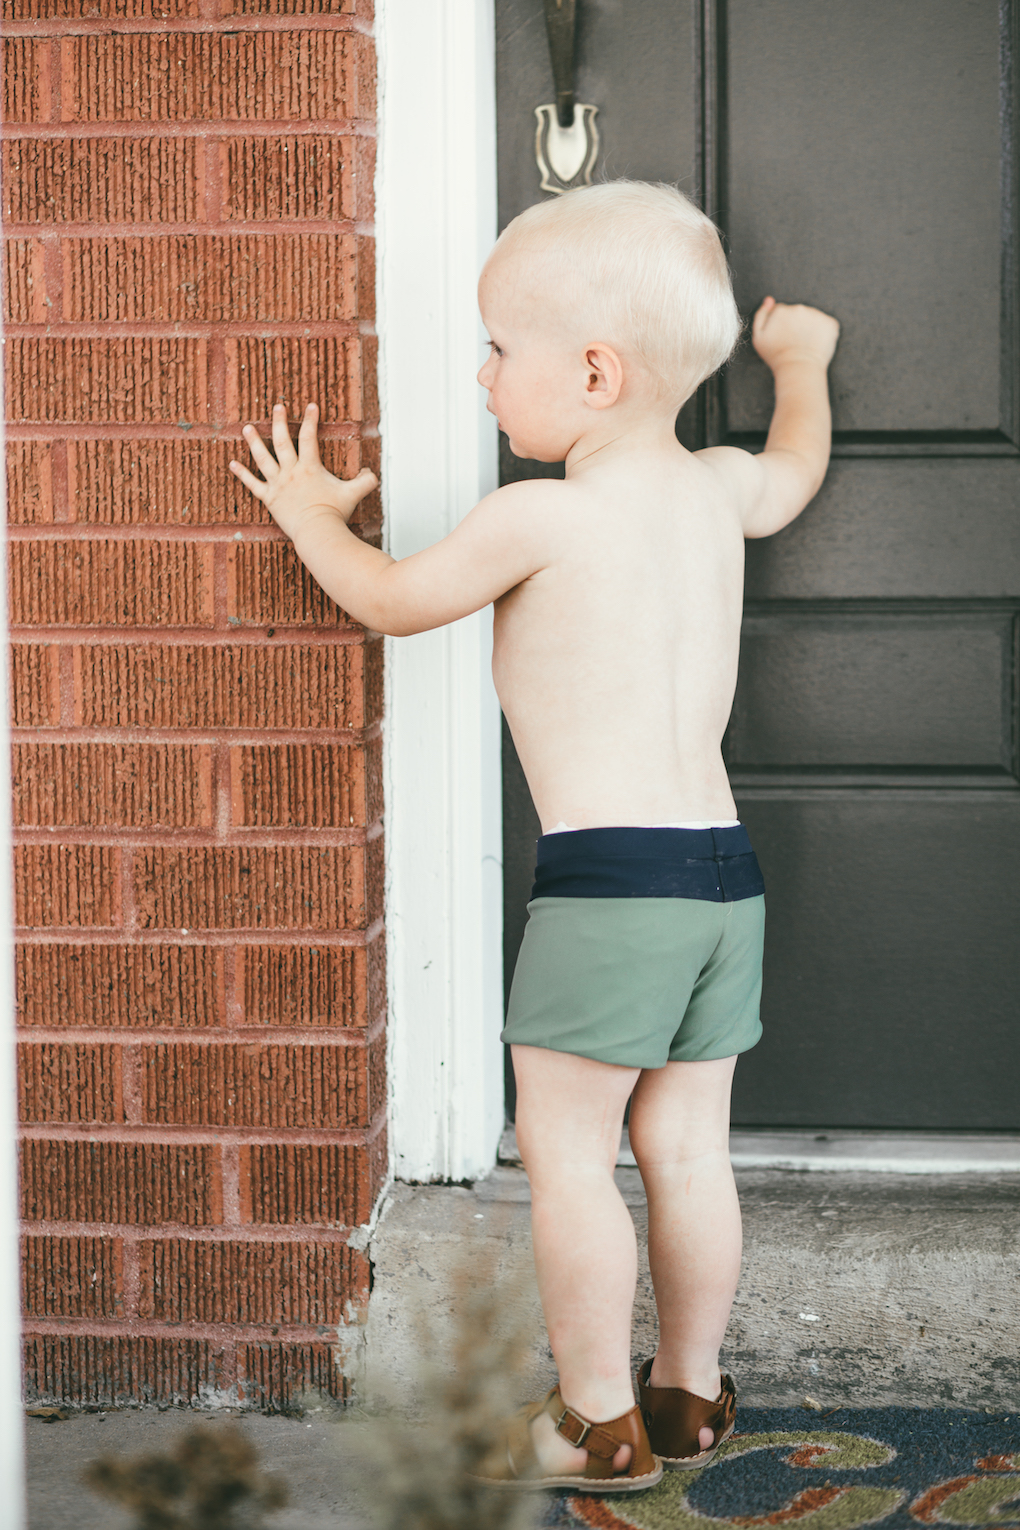 little boy wearing green swimmers knocking on the door